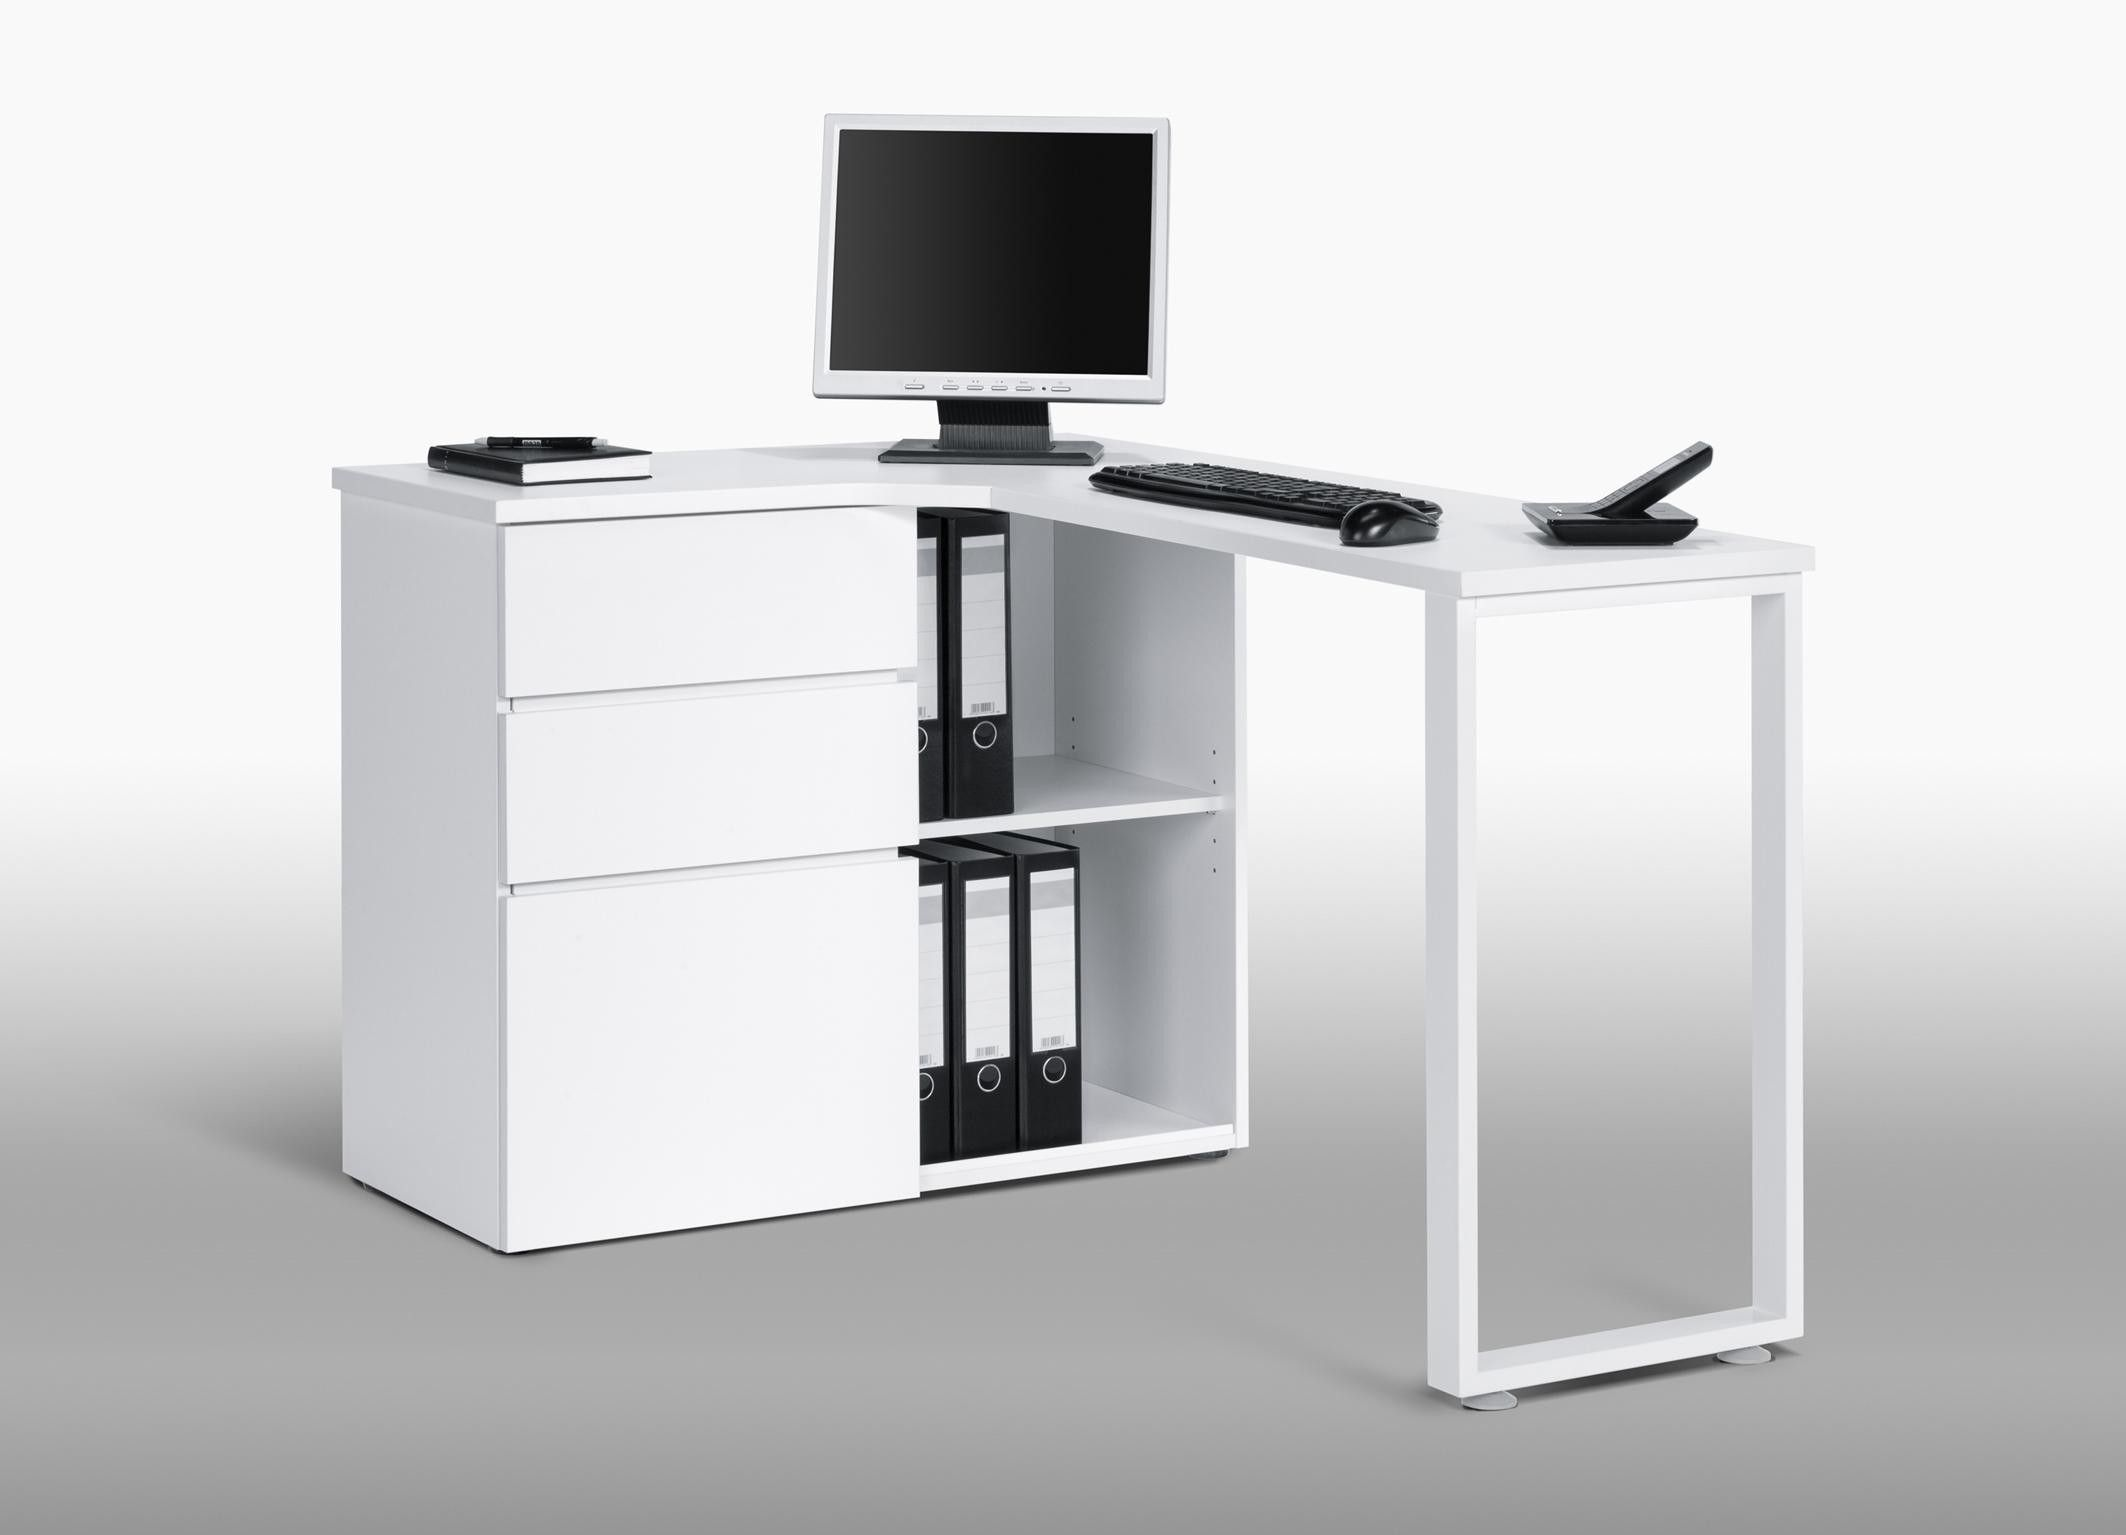 Le bureau informatique dangle design Leila apportera une touche